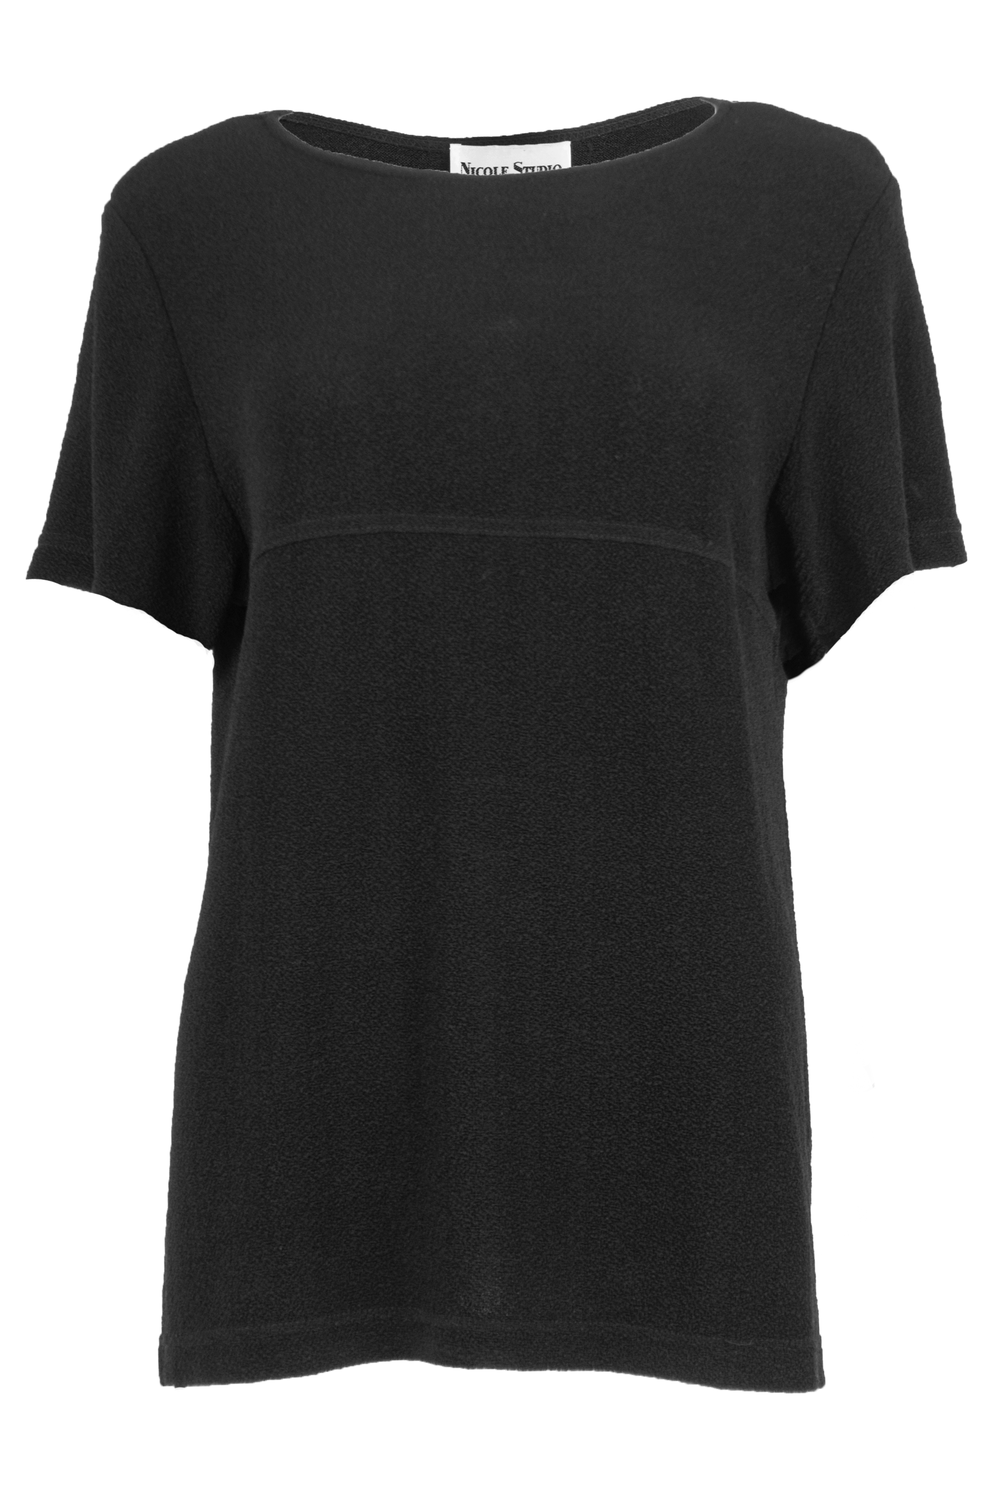 Black vintage t-shirt with seamed stitching